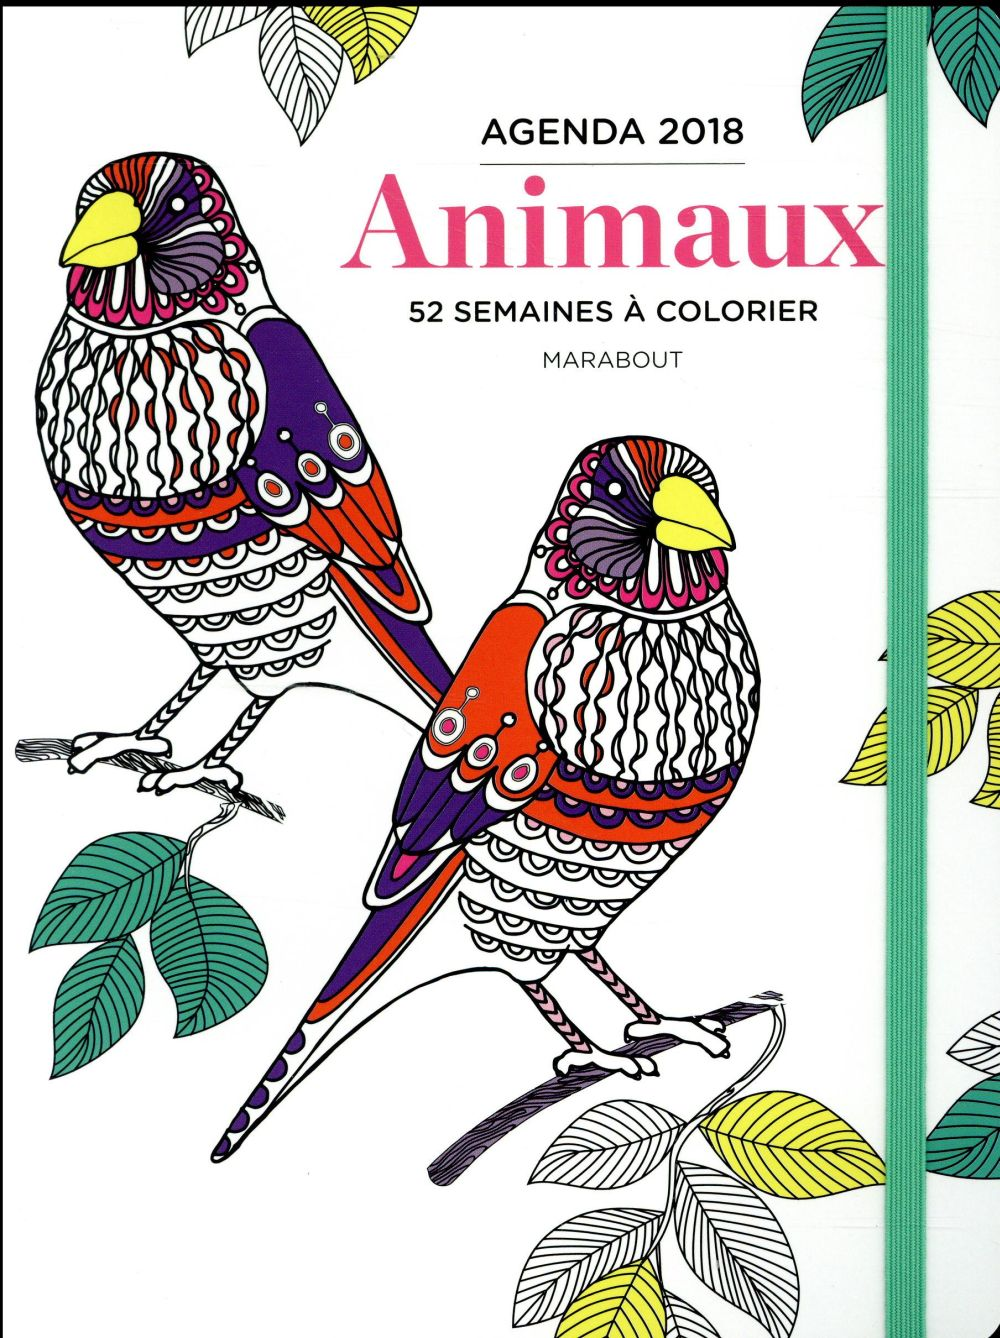 AGENDA 2018 ANIMAUX 52 SEMAINES A COLORIER